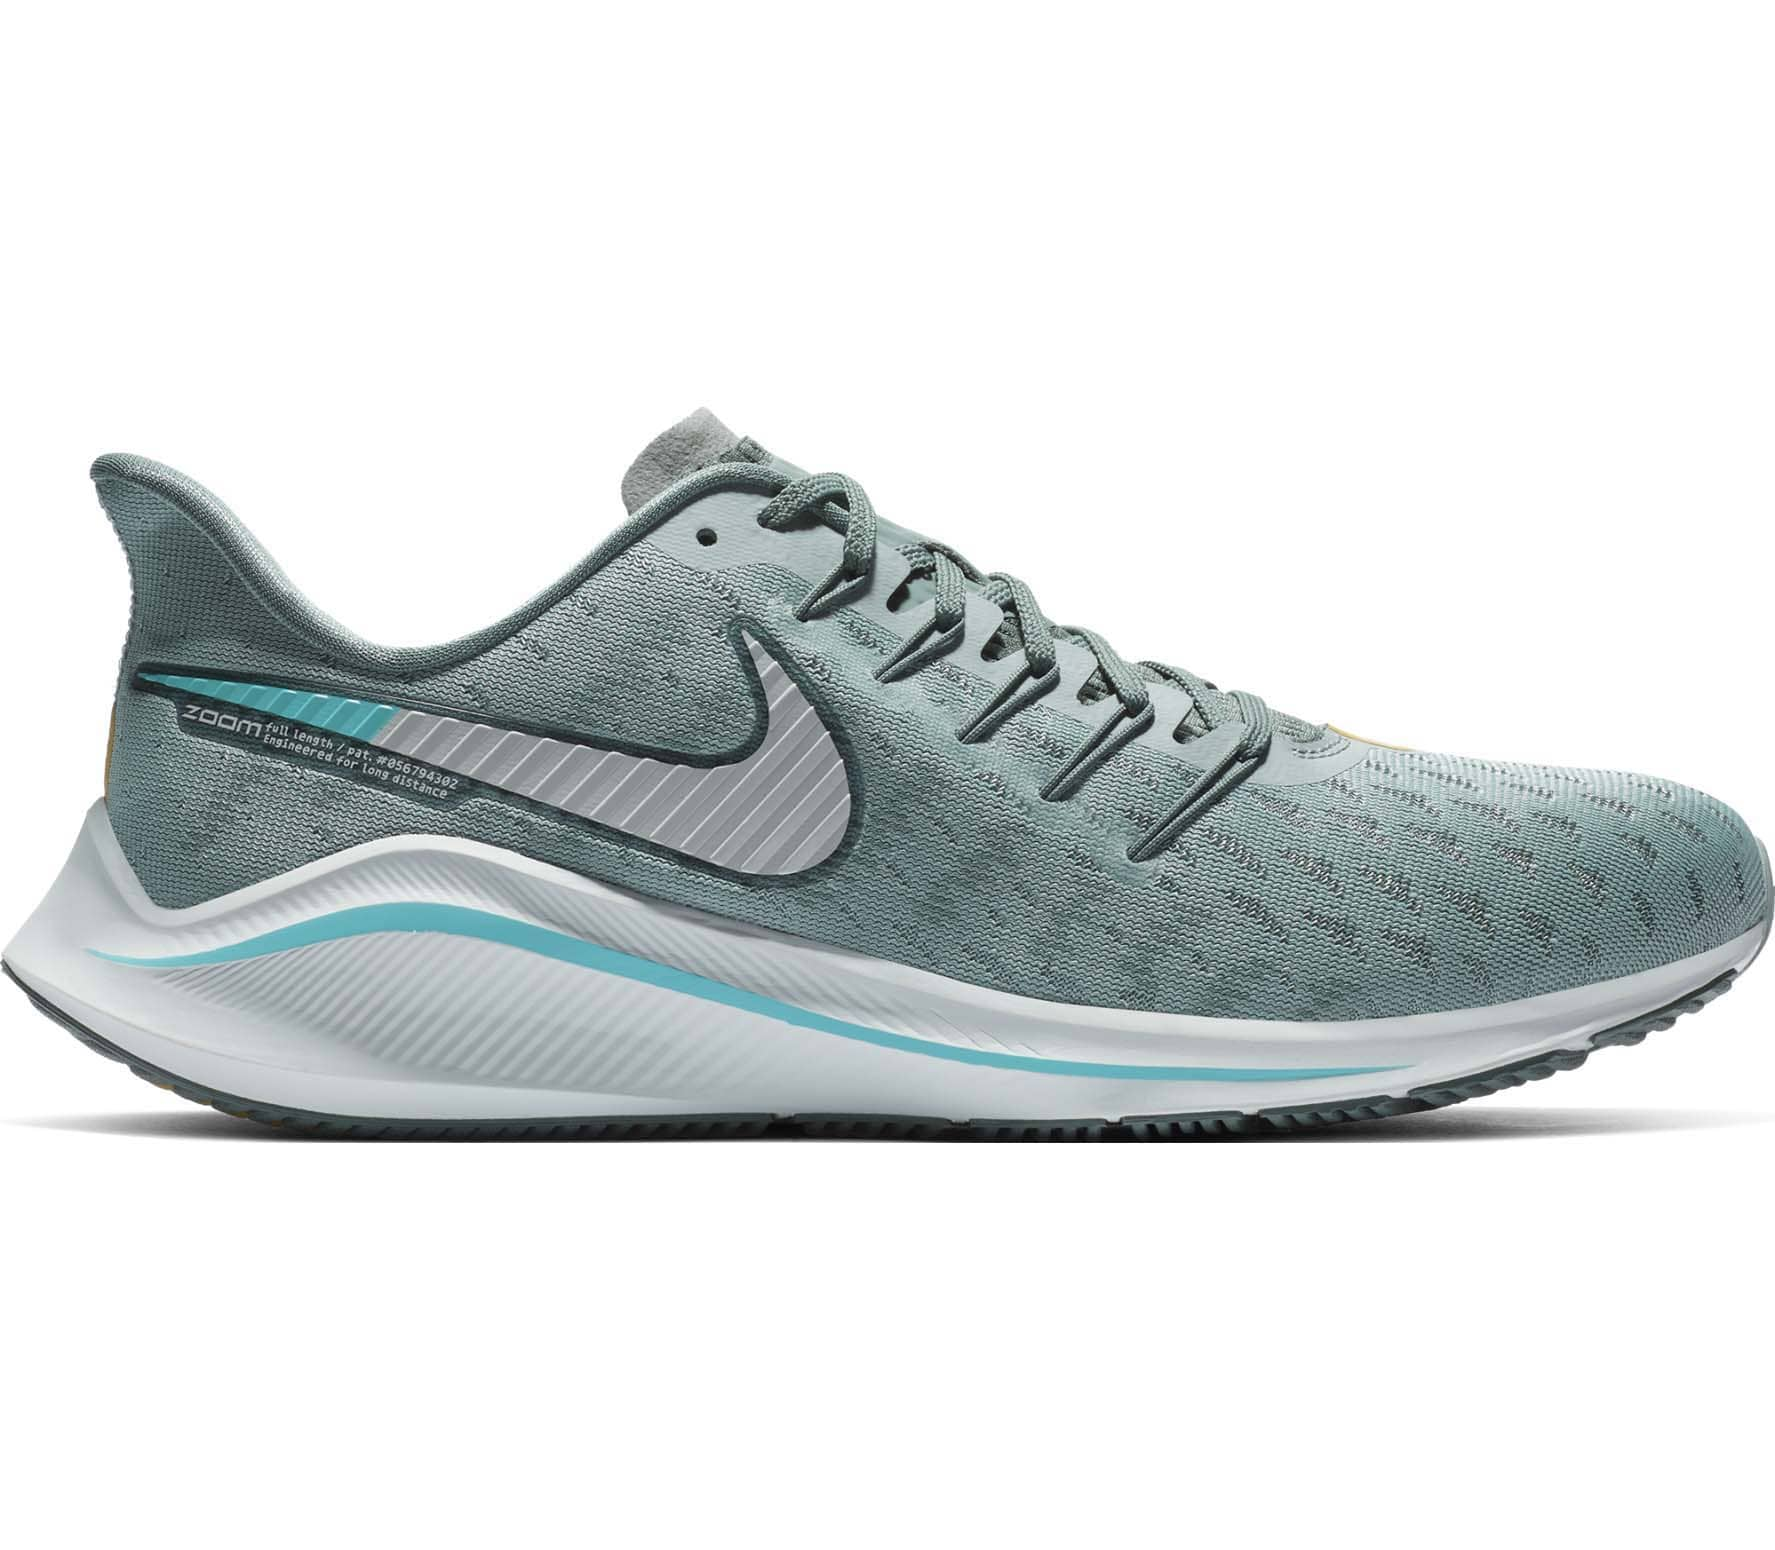 superior quality 68766 642fd Nike - Air Zoom Vomero 14 men s running shoes (blue grey)